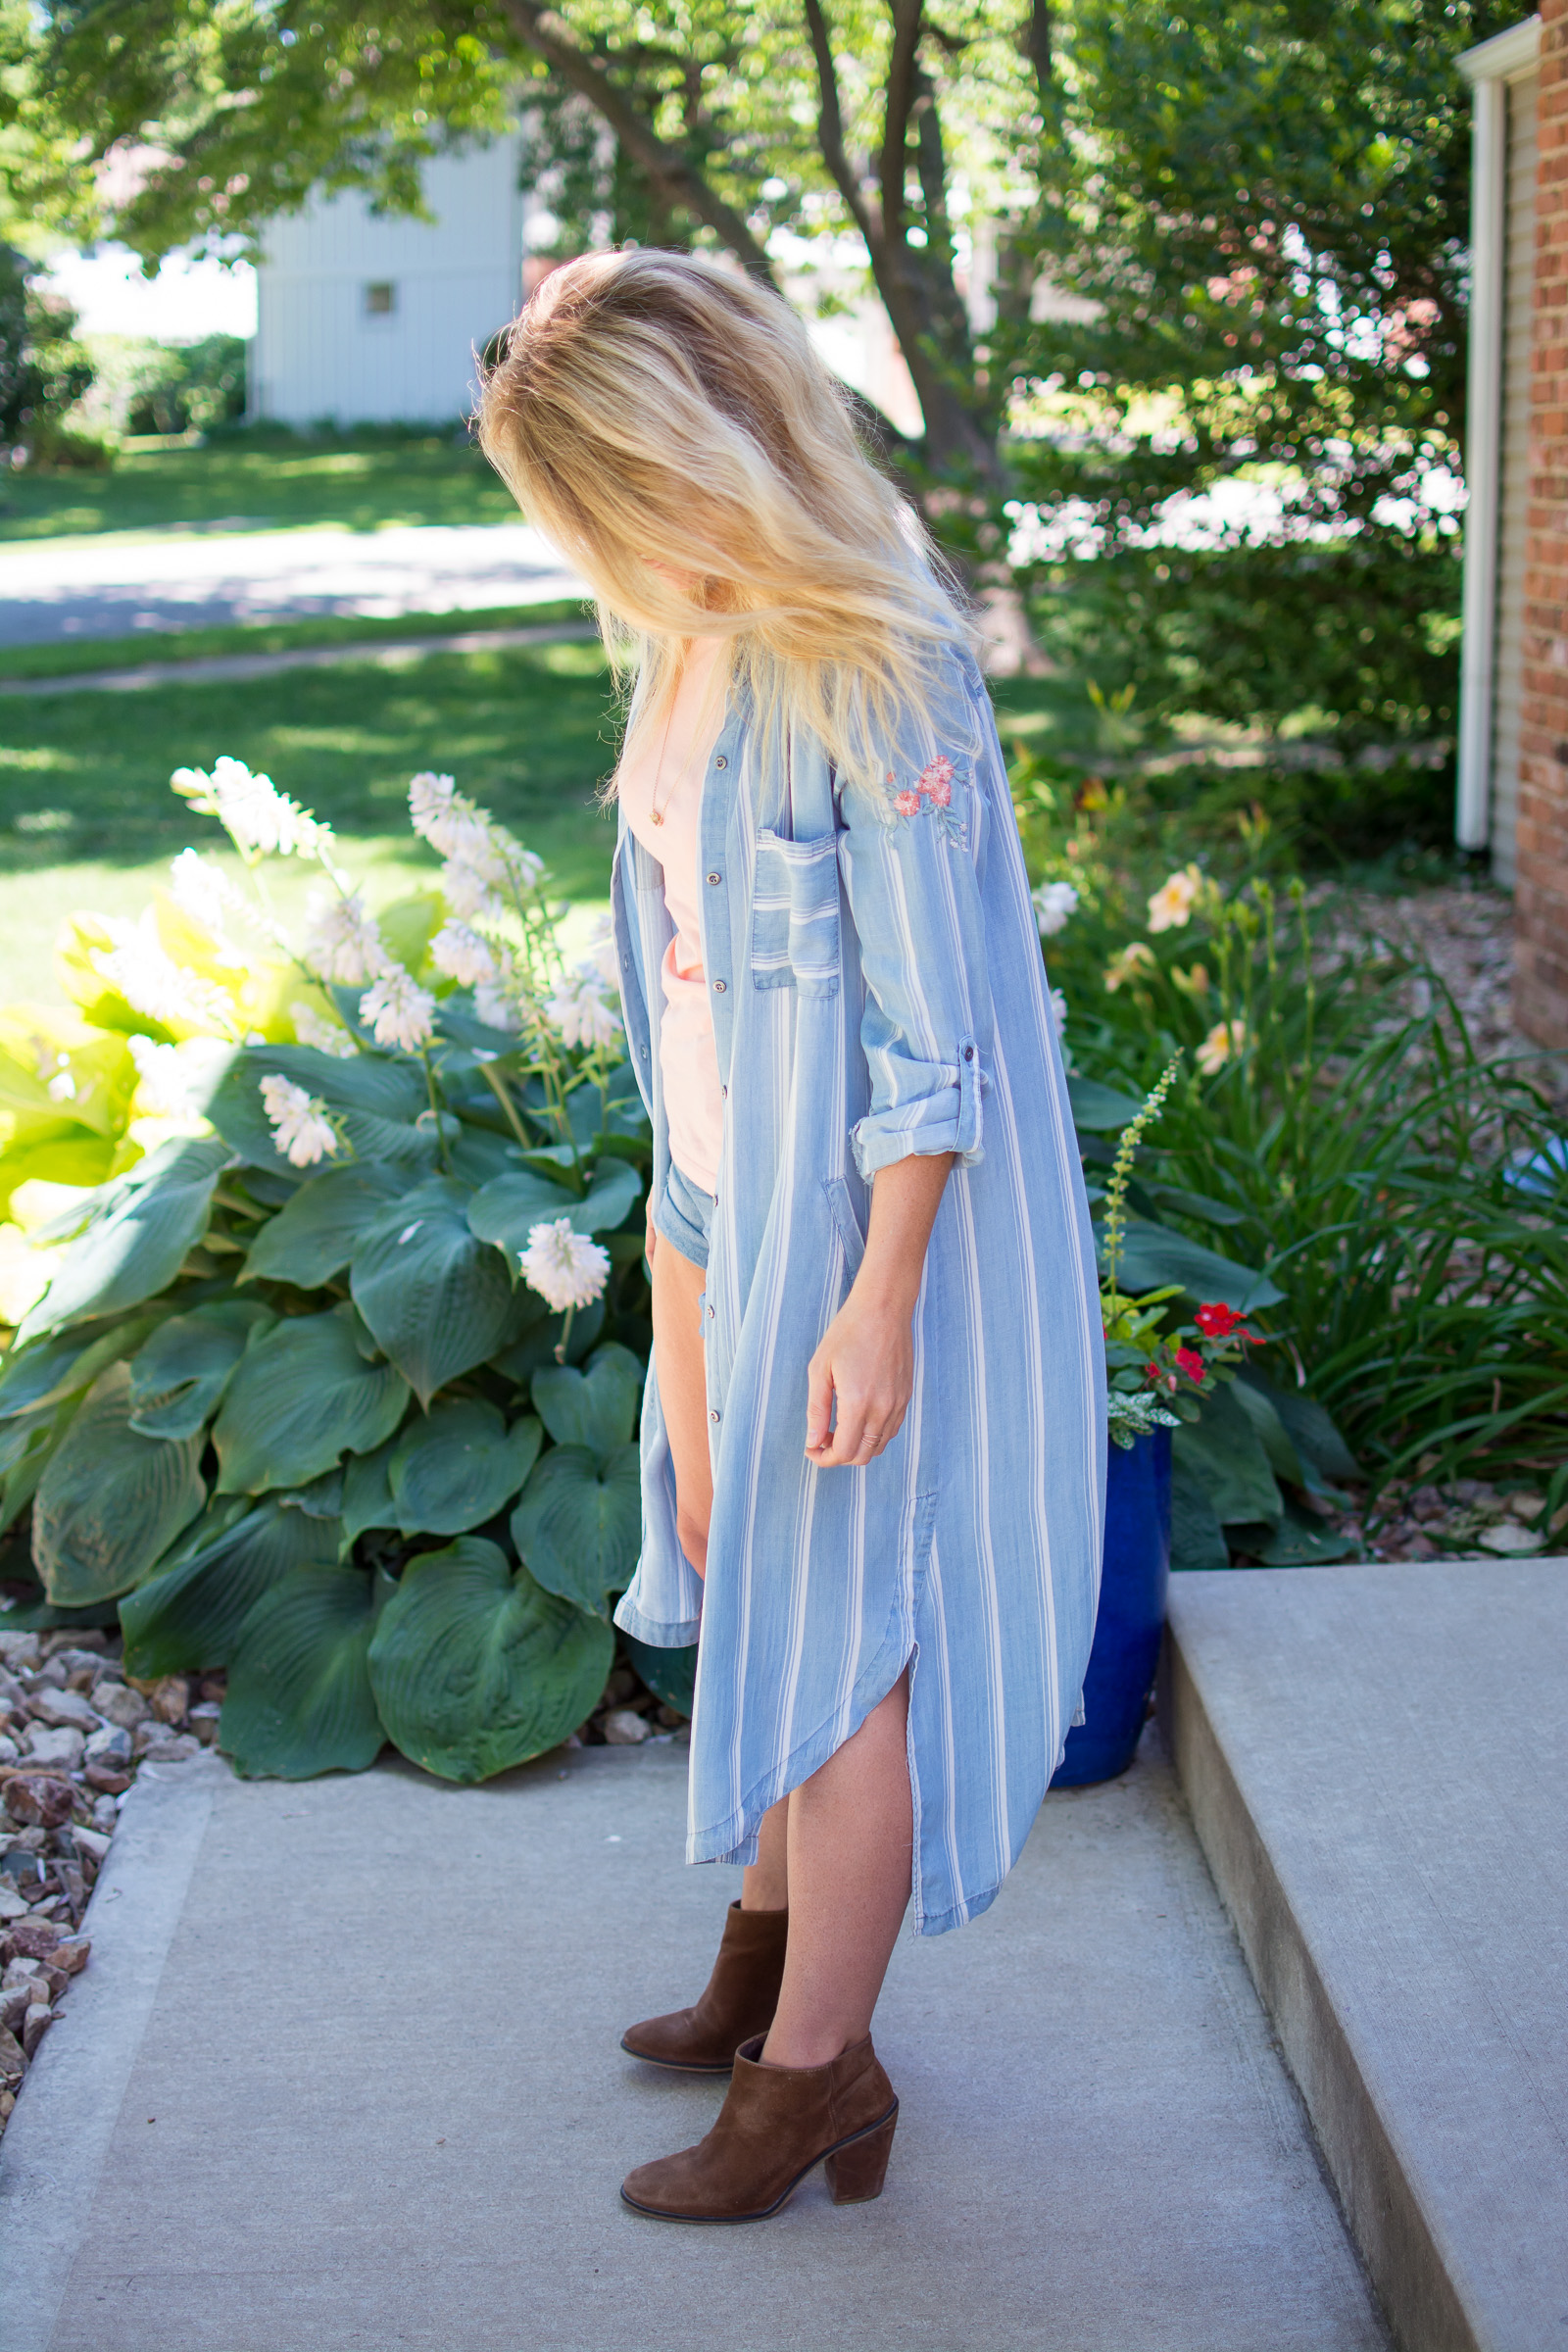 Wearing a Striped Duster for Summer. | Ashley from Le Stylo Rouge